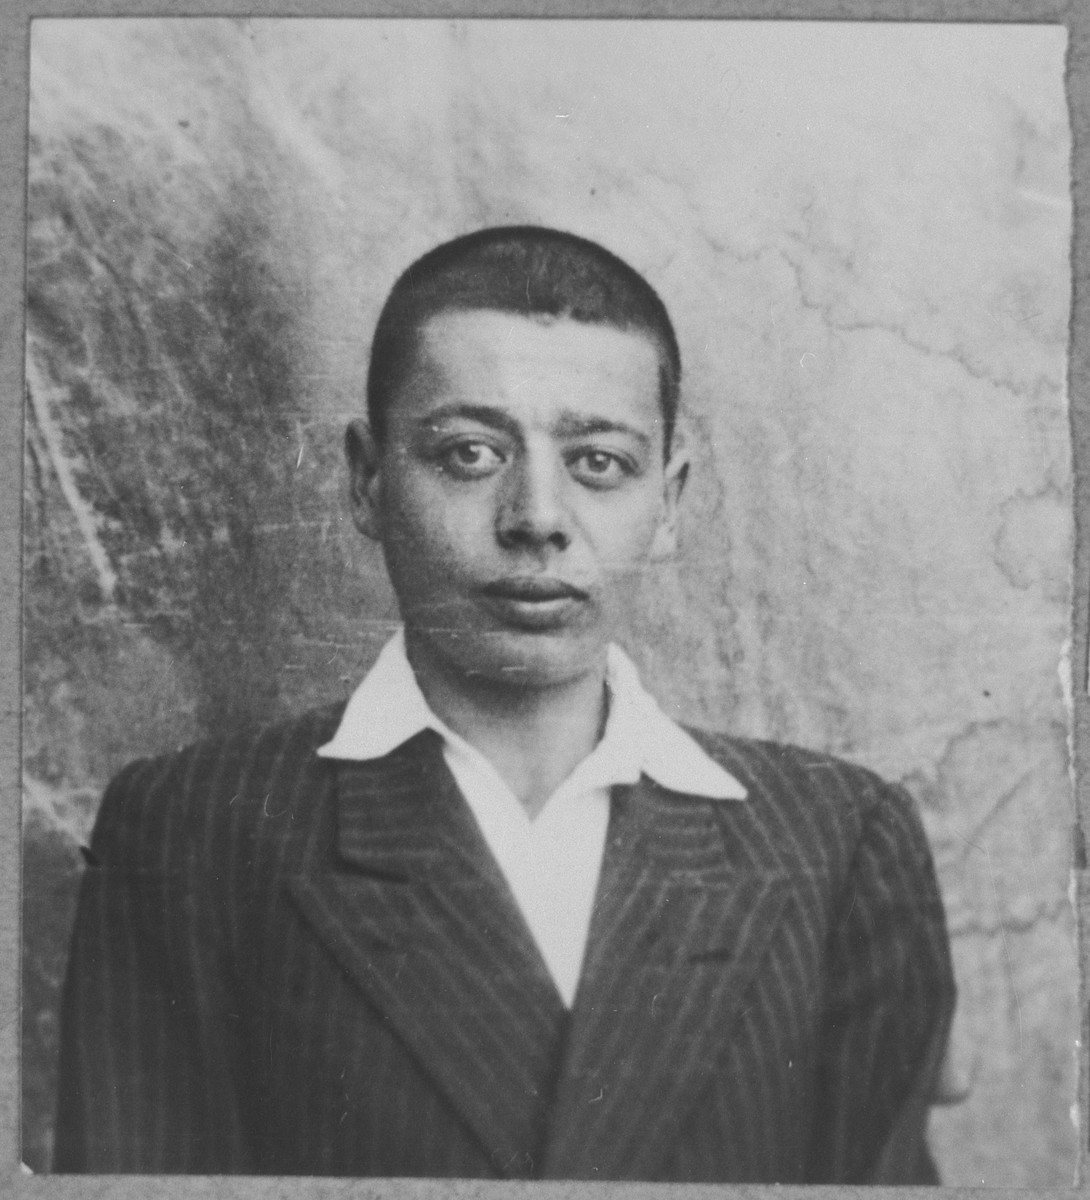 Portrait of Yakov Todelano, son of Menachem Todelano.  He was a student.  He lived a Bistritska 9 in Bitola.